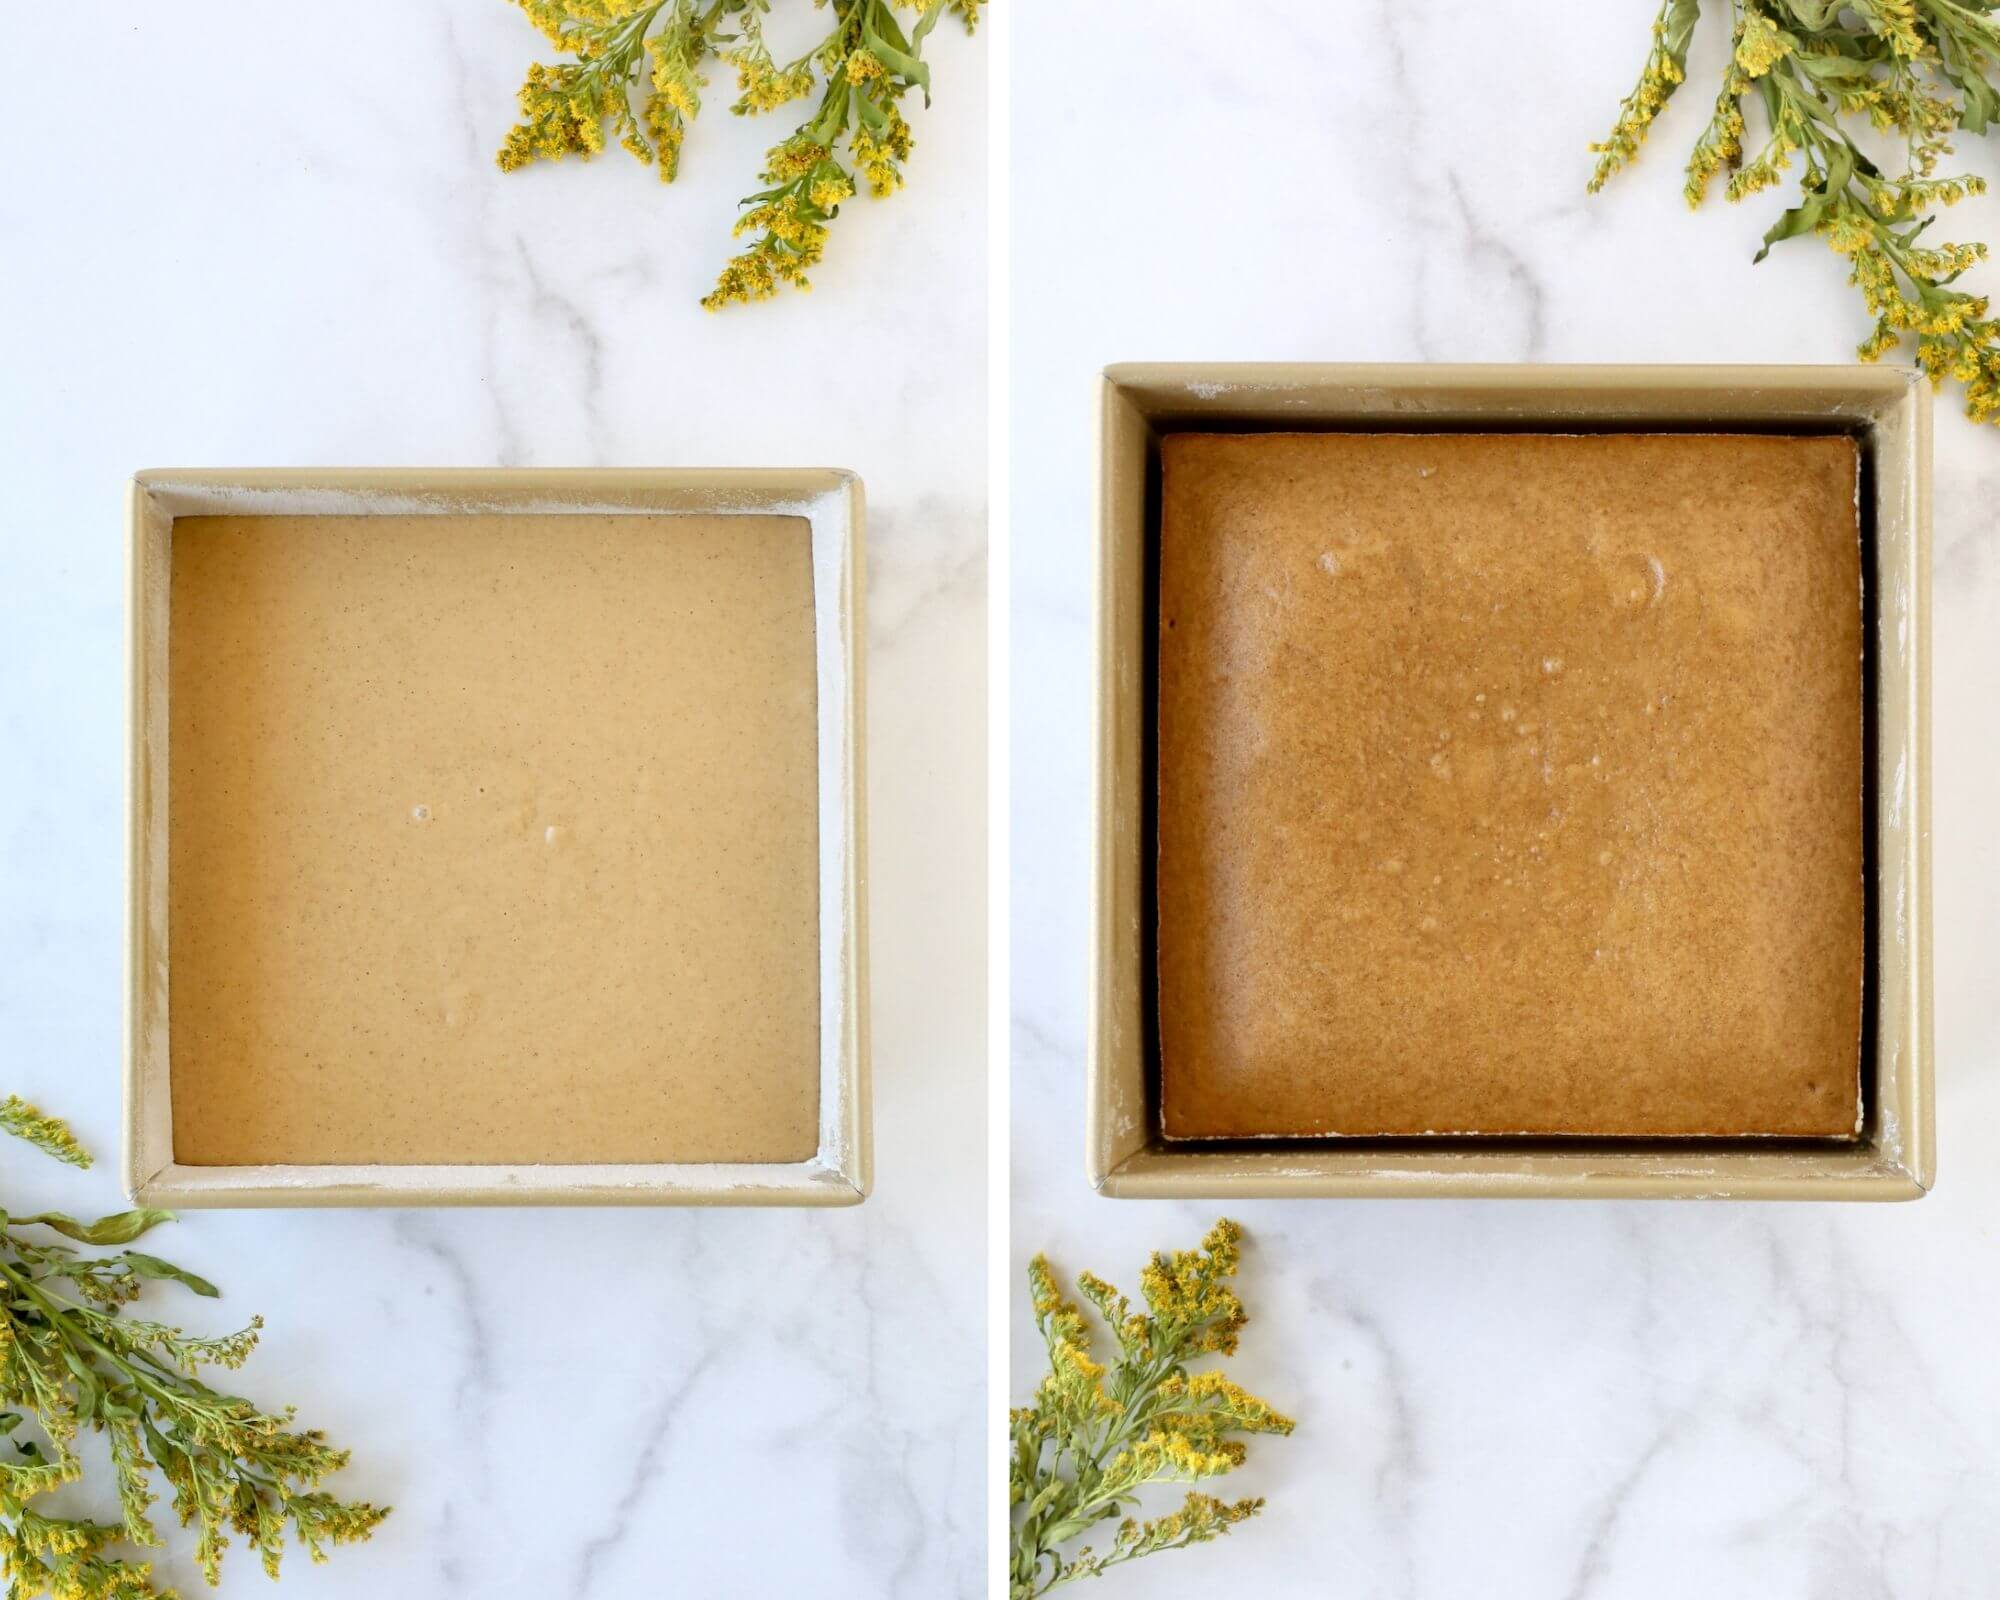 A square cake pan with raw cake batter next to a square cake pan with baked cake batter.